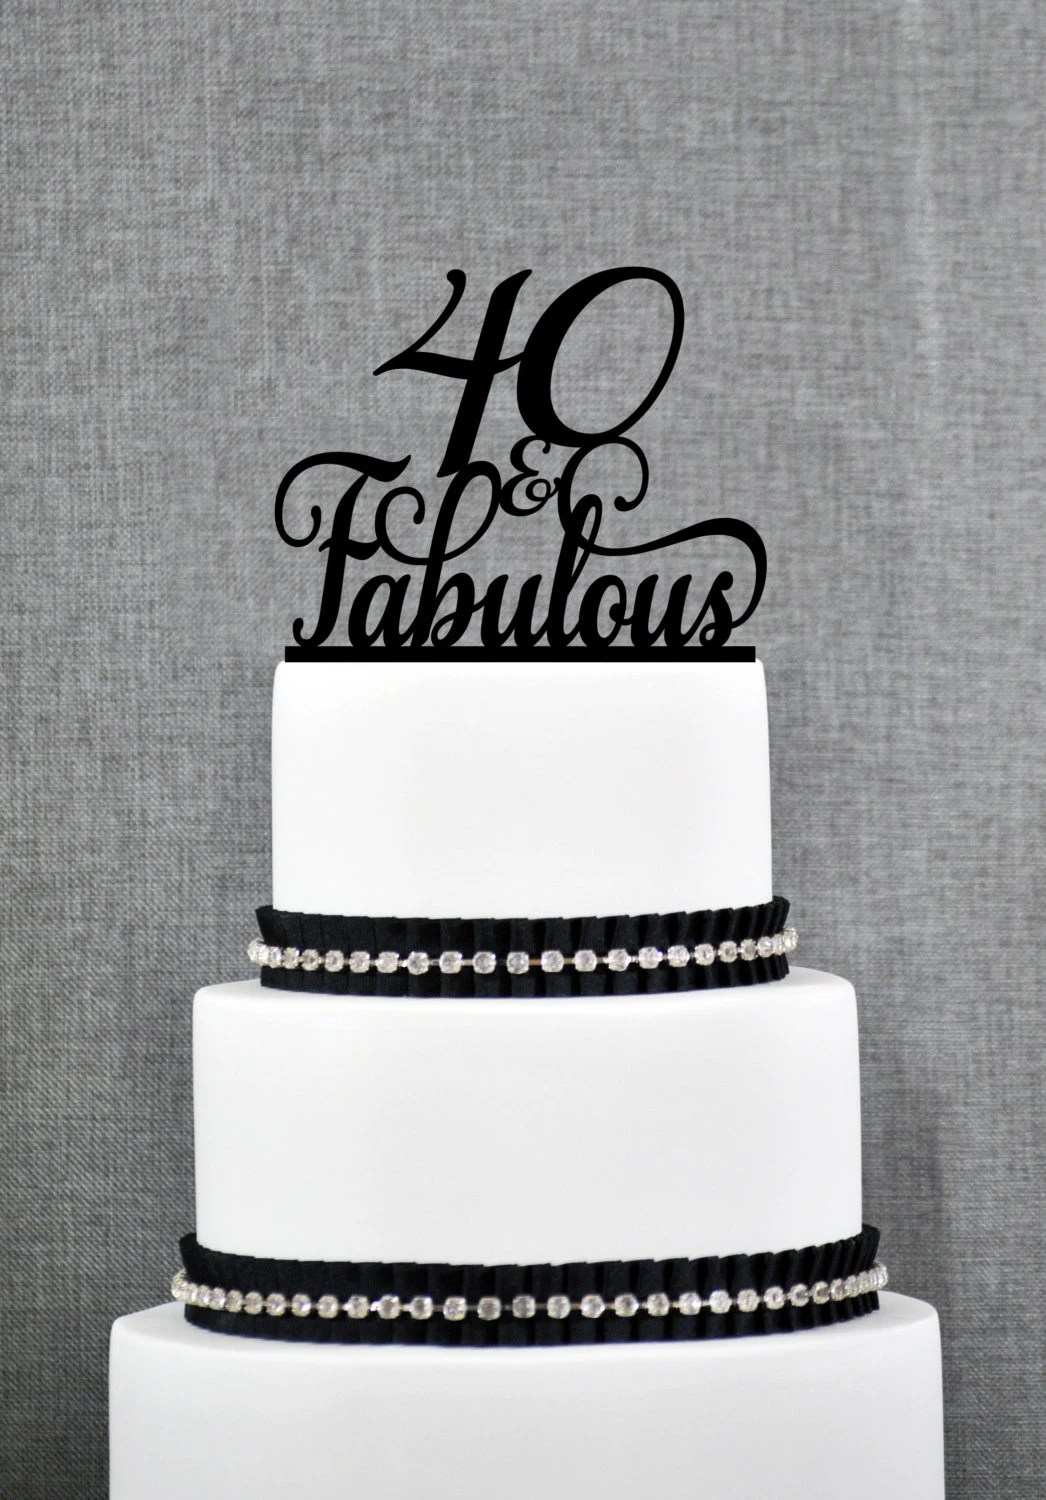 40 And Fabulous Birthday Topper Classy 40th Birthday Topper